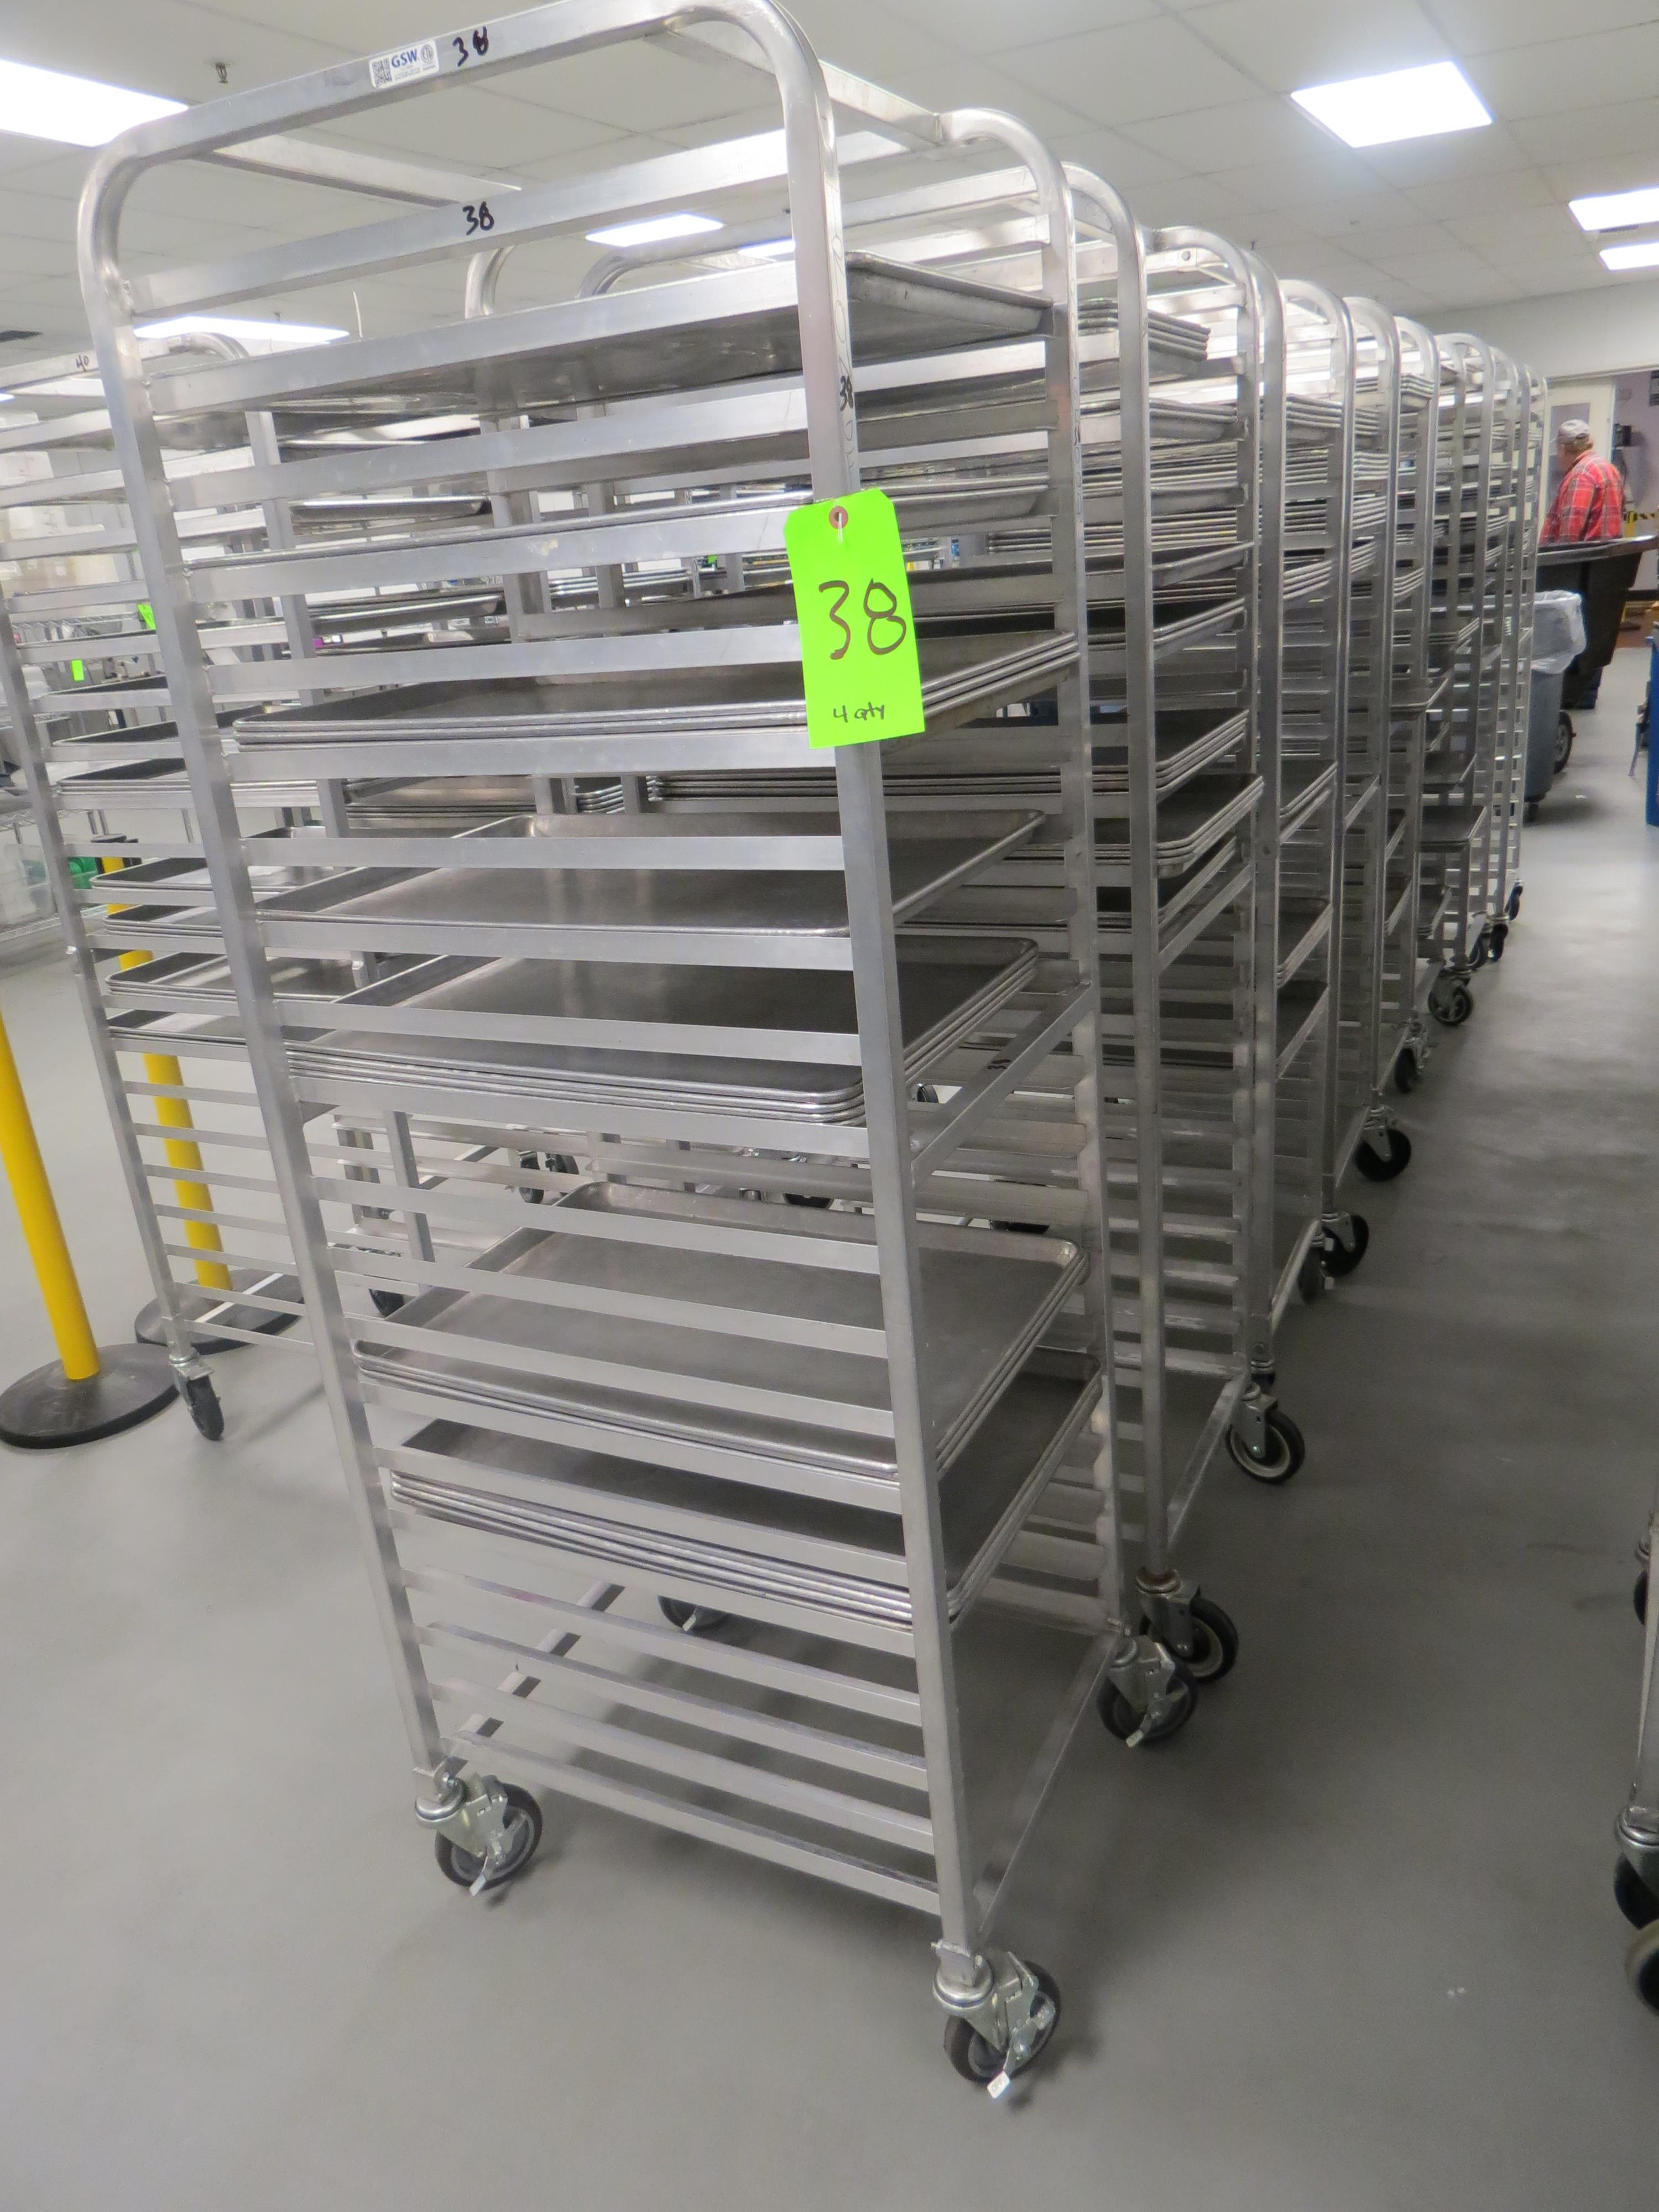 Lot 38 - MOBILE BAKER RACKS WITH 18 TRAYS